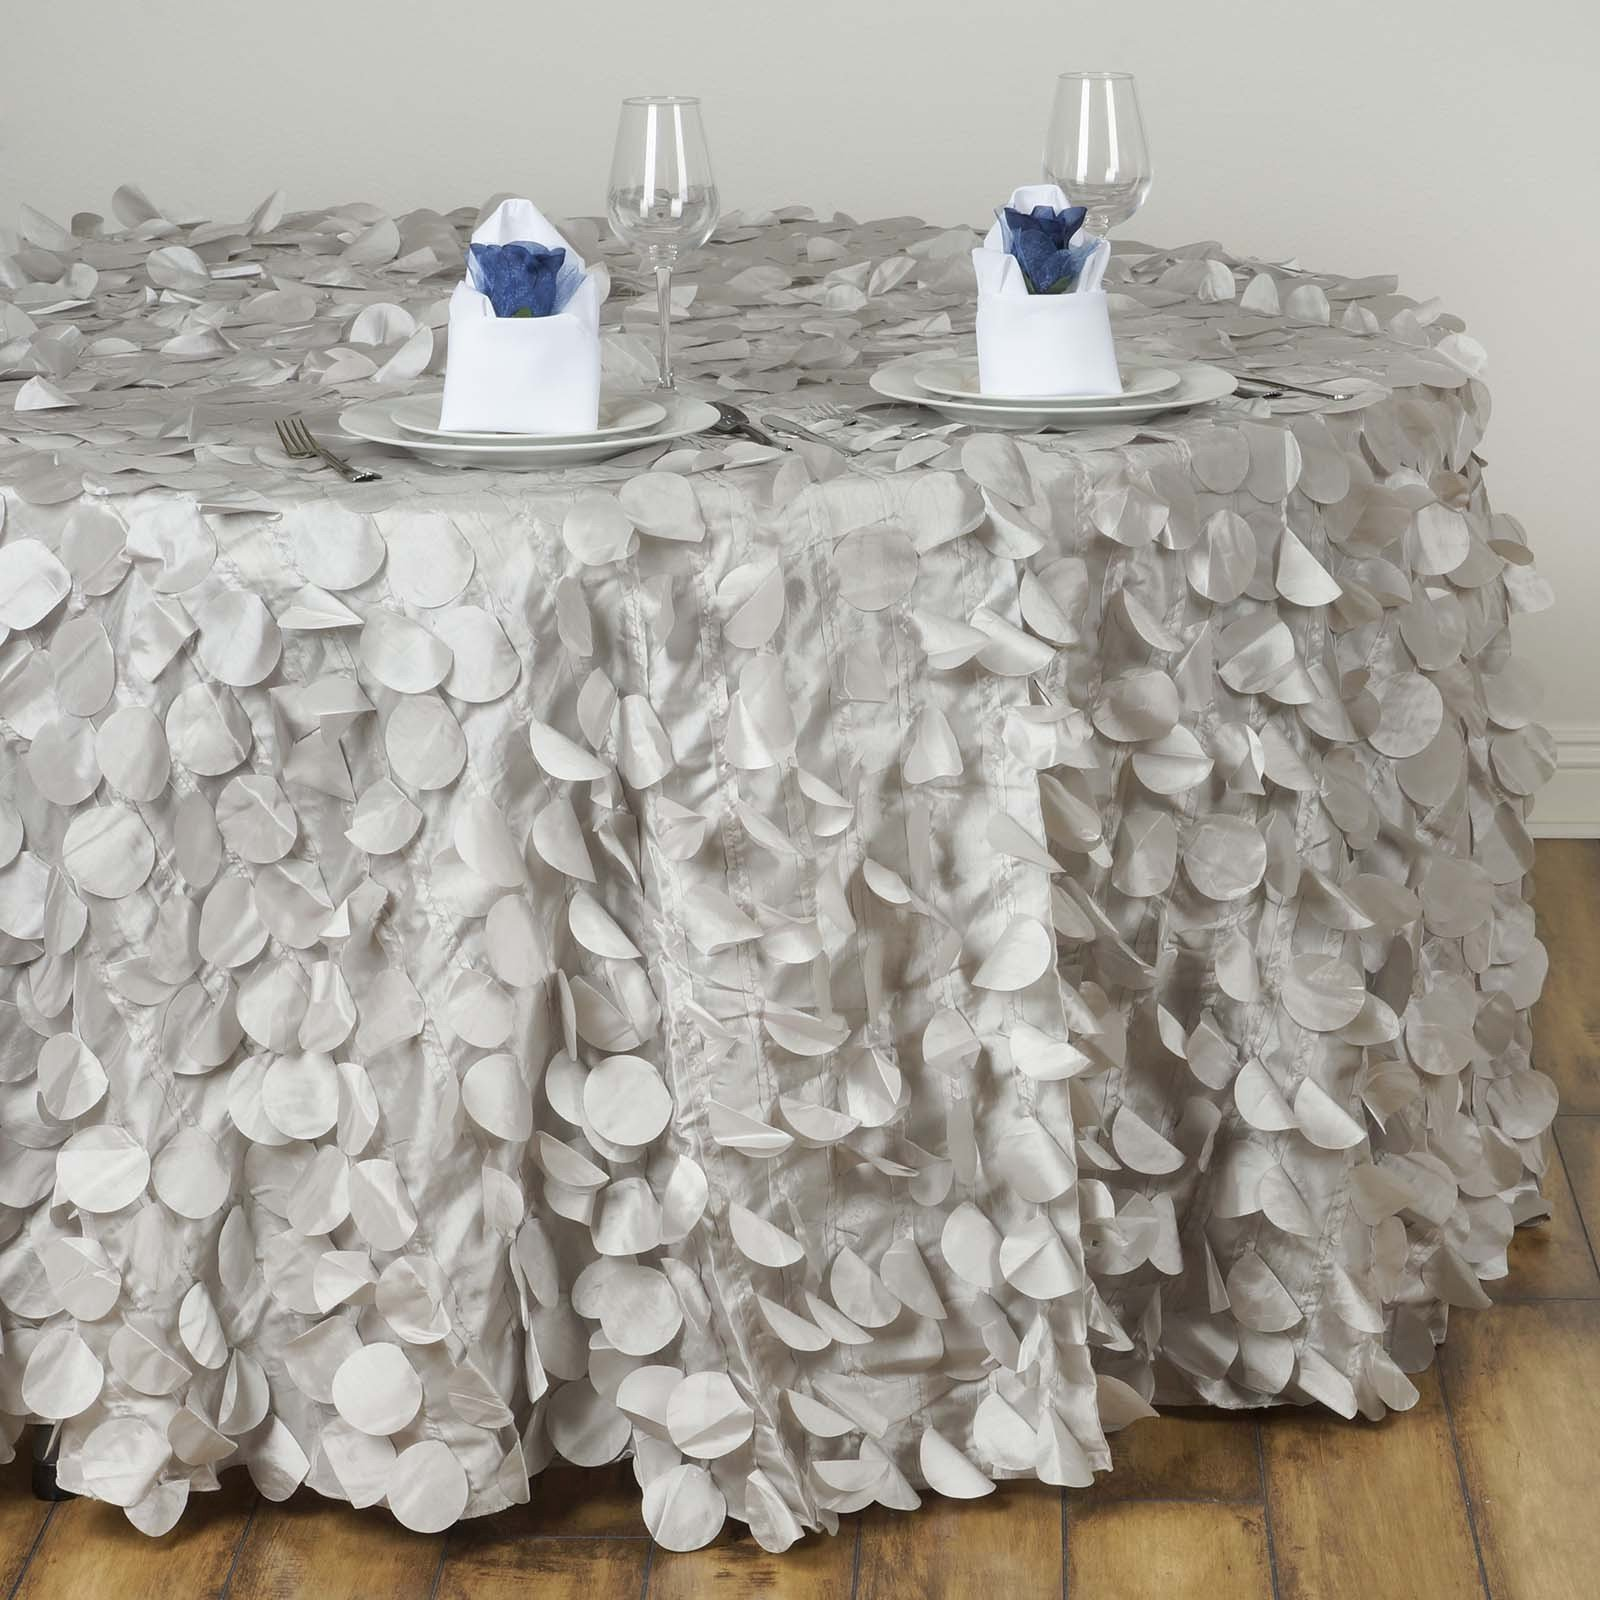 silver round flamingo petals tablecloth tablecloths factory tab pet silv accent table fancy whole taffeta petal for wedding catering event party linens built bbq ideas